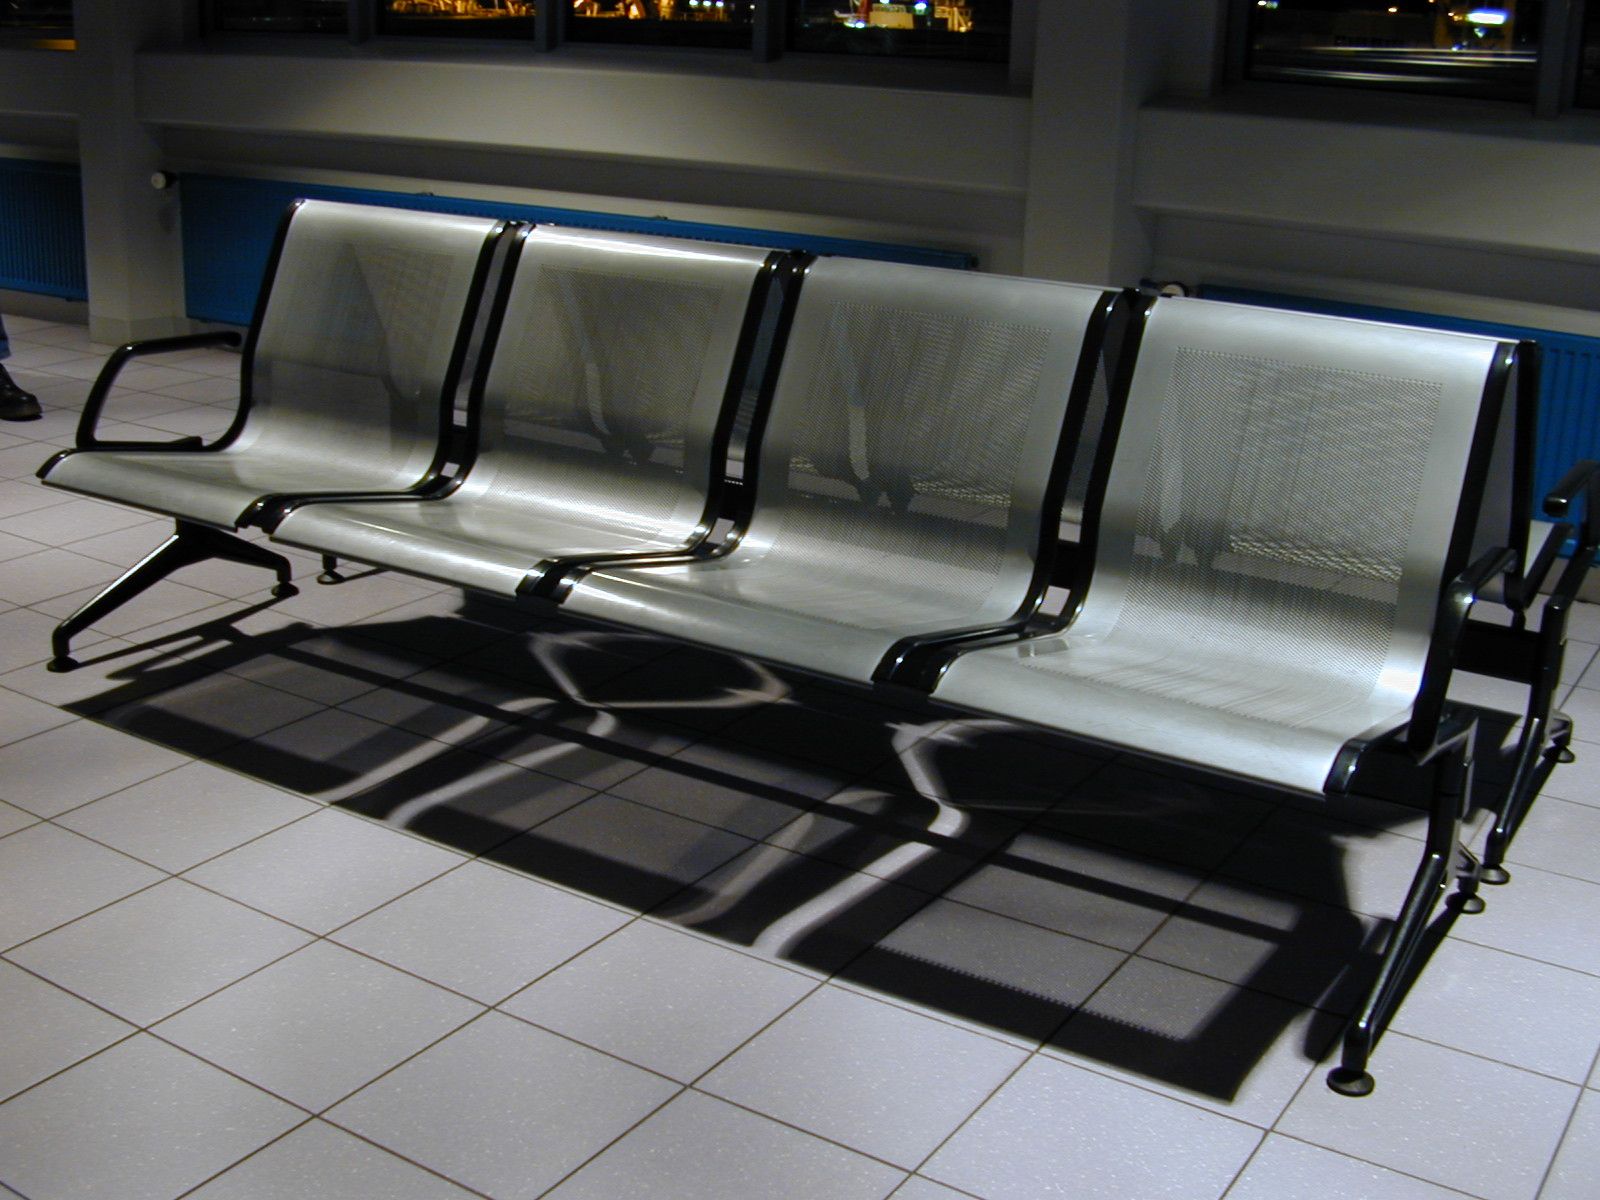 Image After Photos Bench Benches Airport Waiting Room Metal Iron Modern Grates Chair Chairs